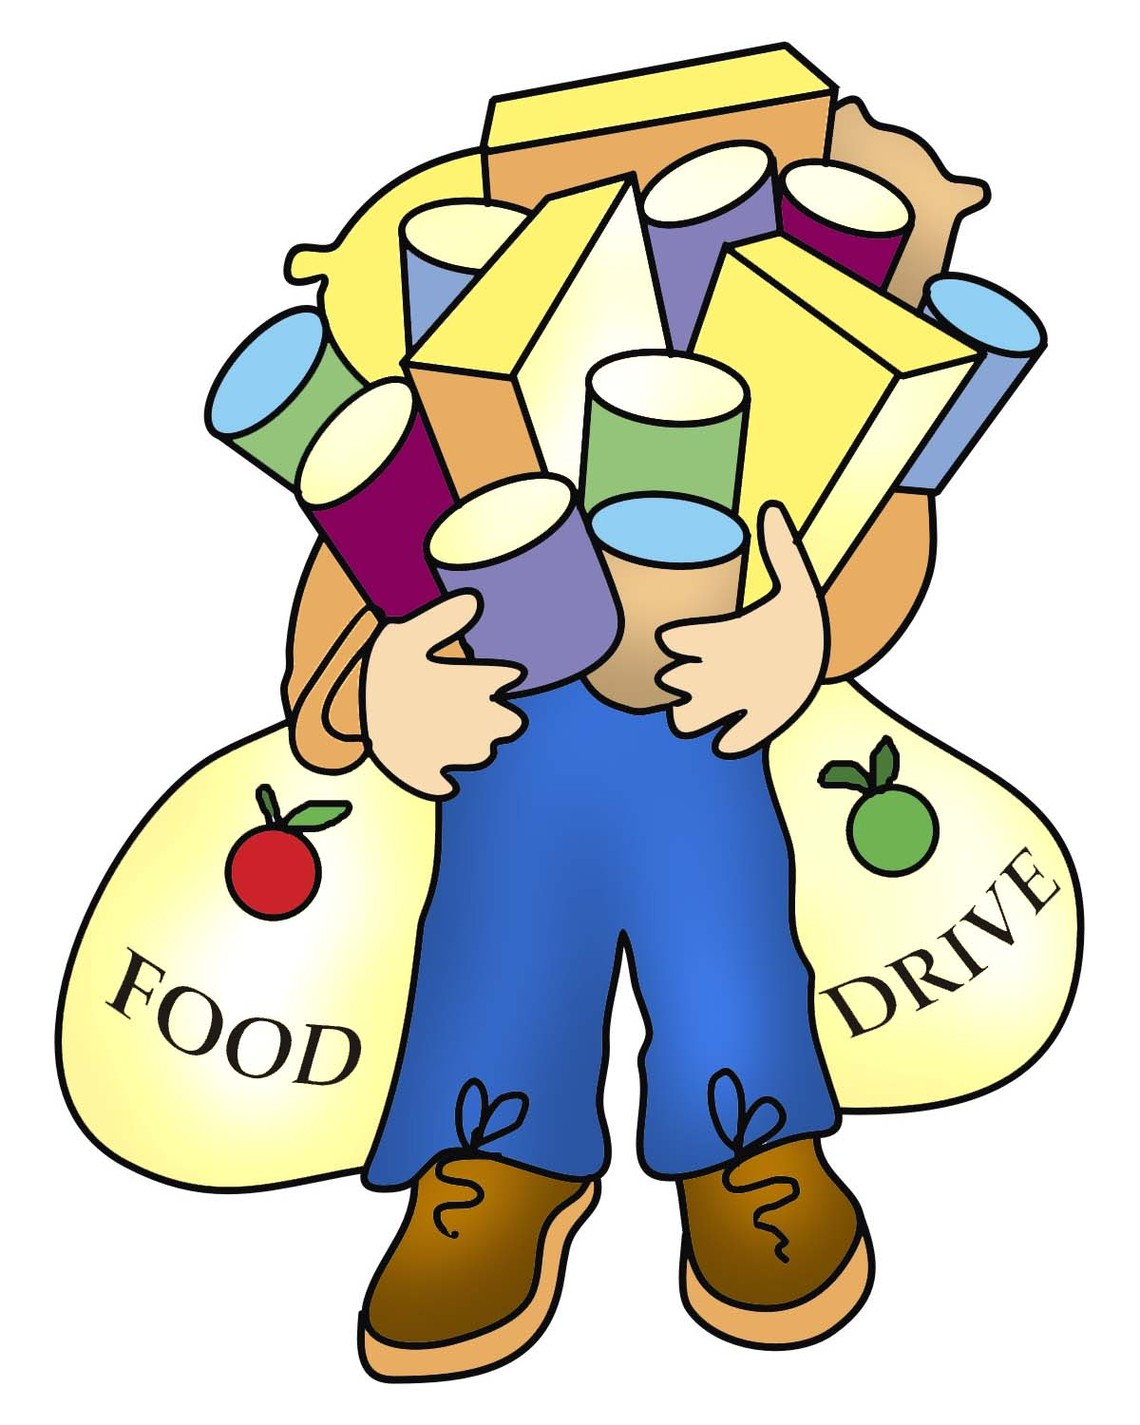 Church Food Drive Clipart.